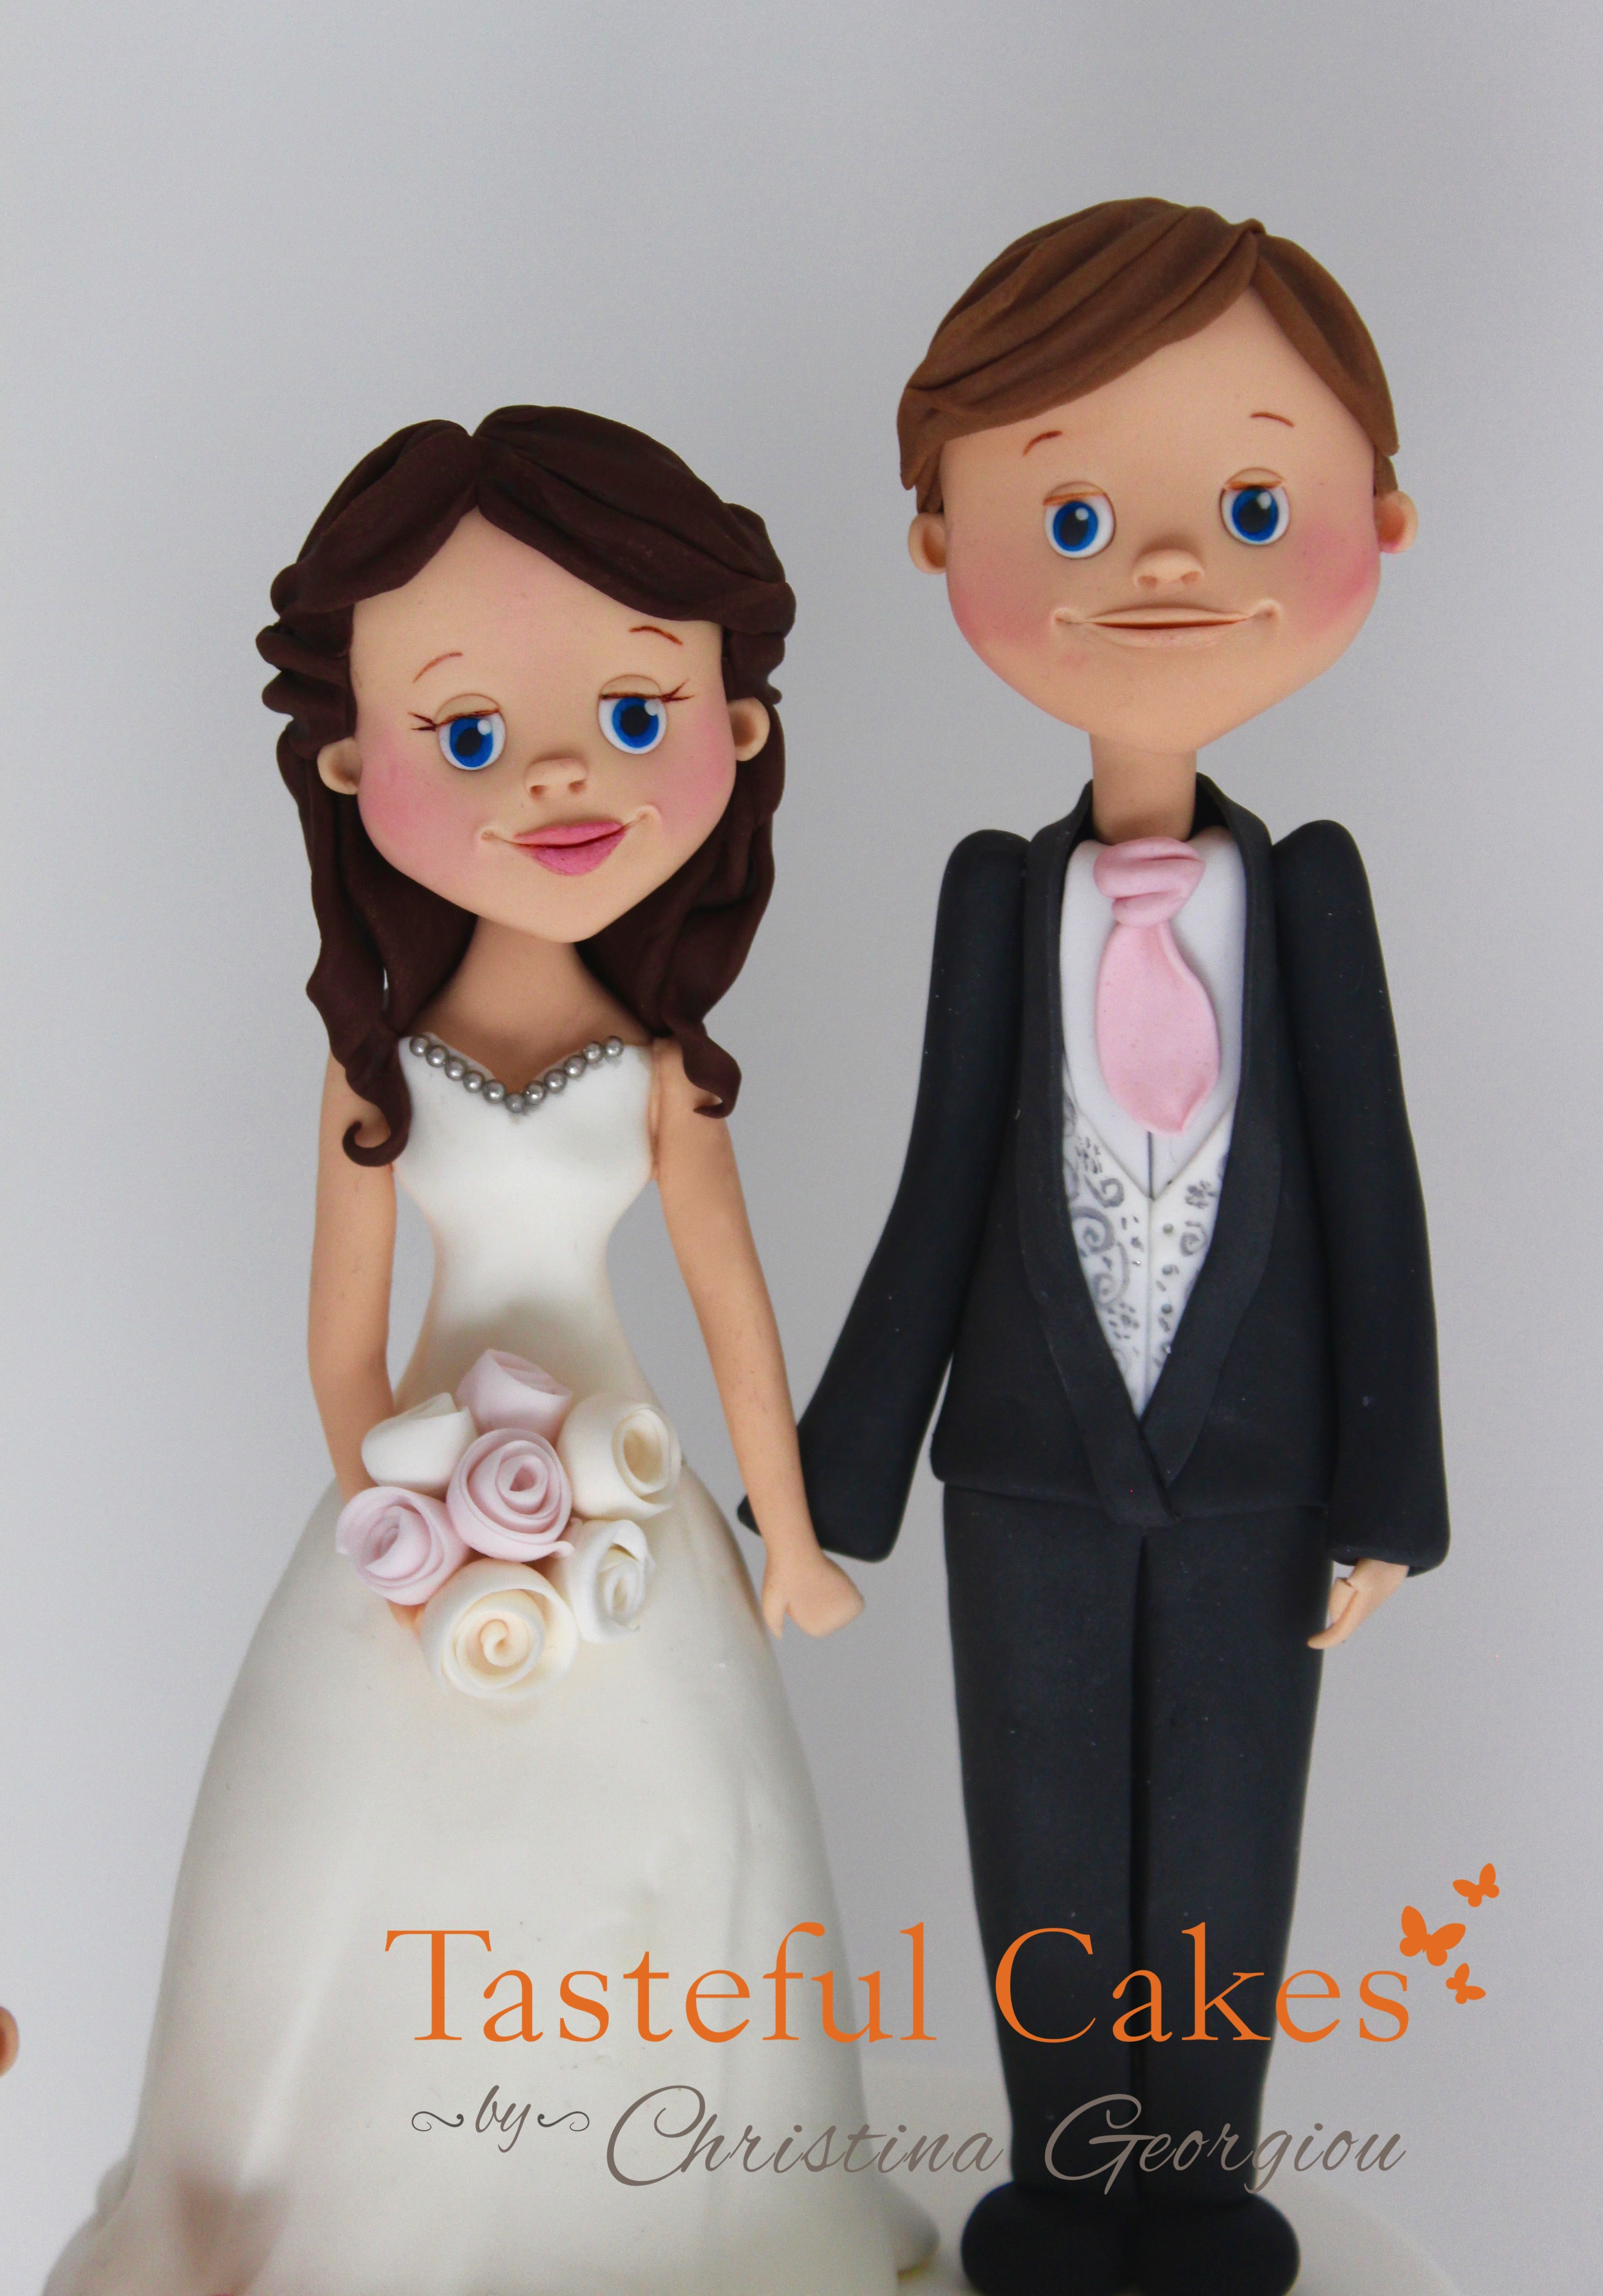 Cake Toppers Uk Bride And Groom : Tasteful Cakes By Christina Georgiou Bespoke Bride ...